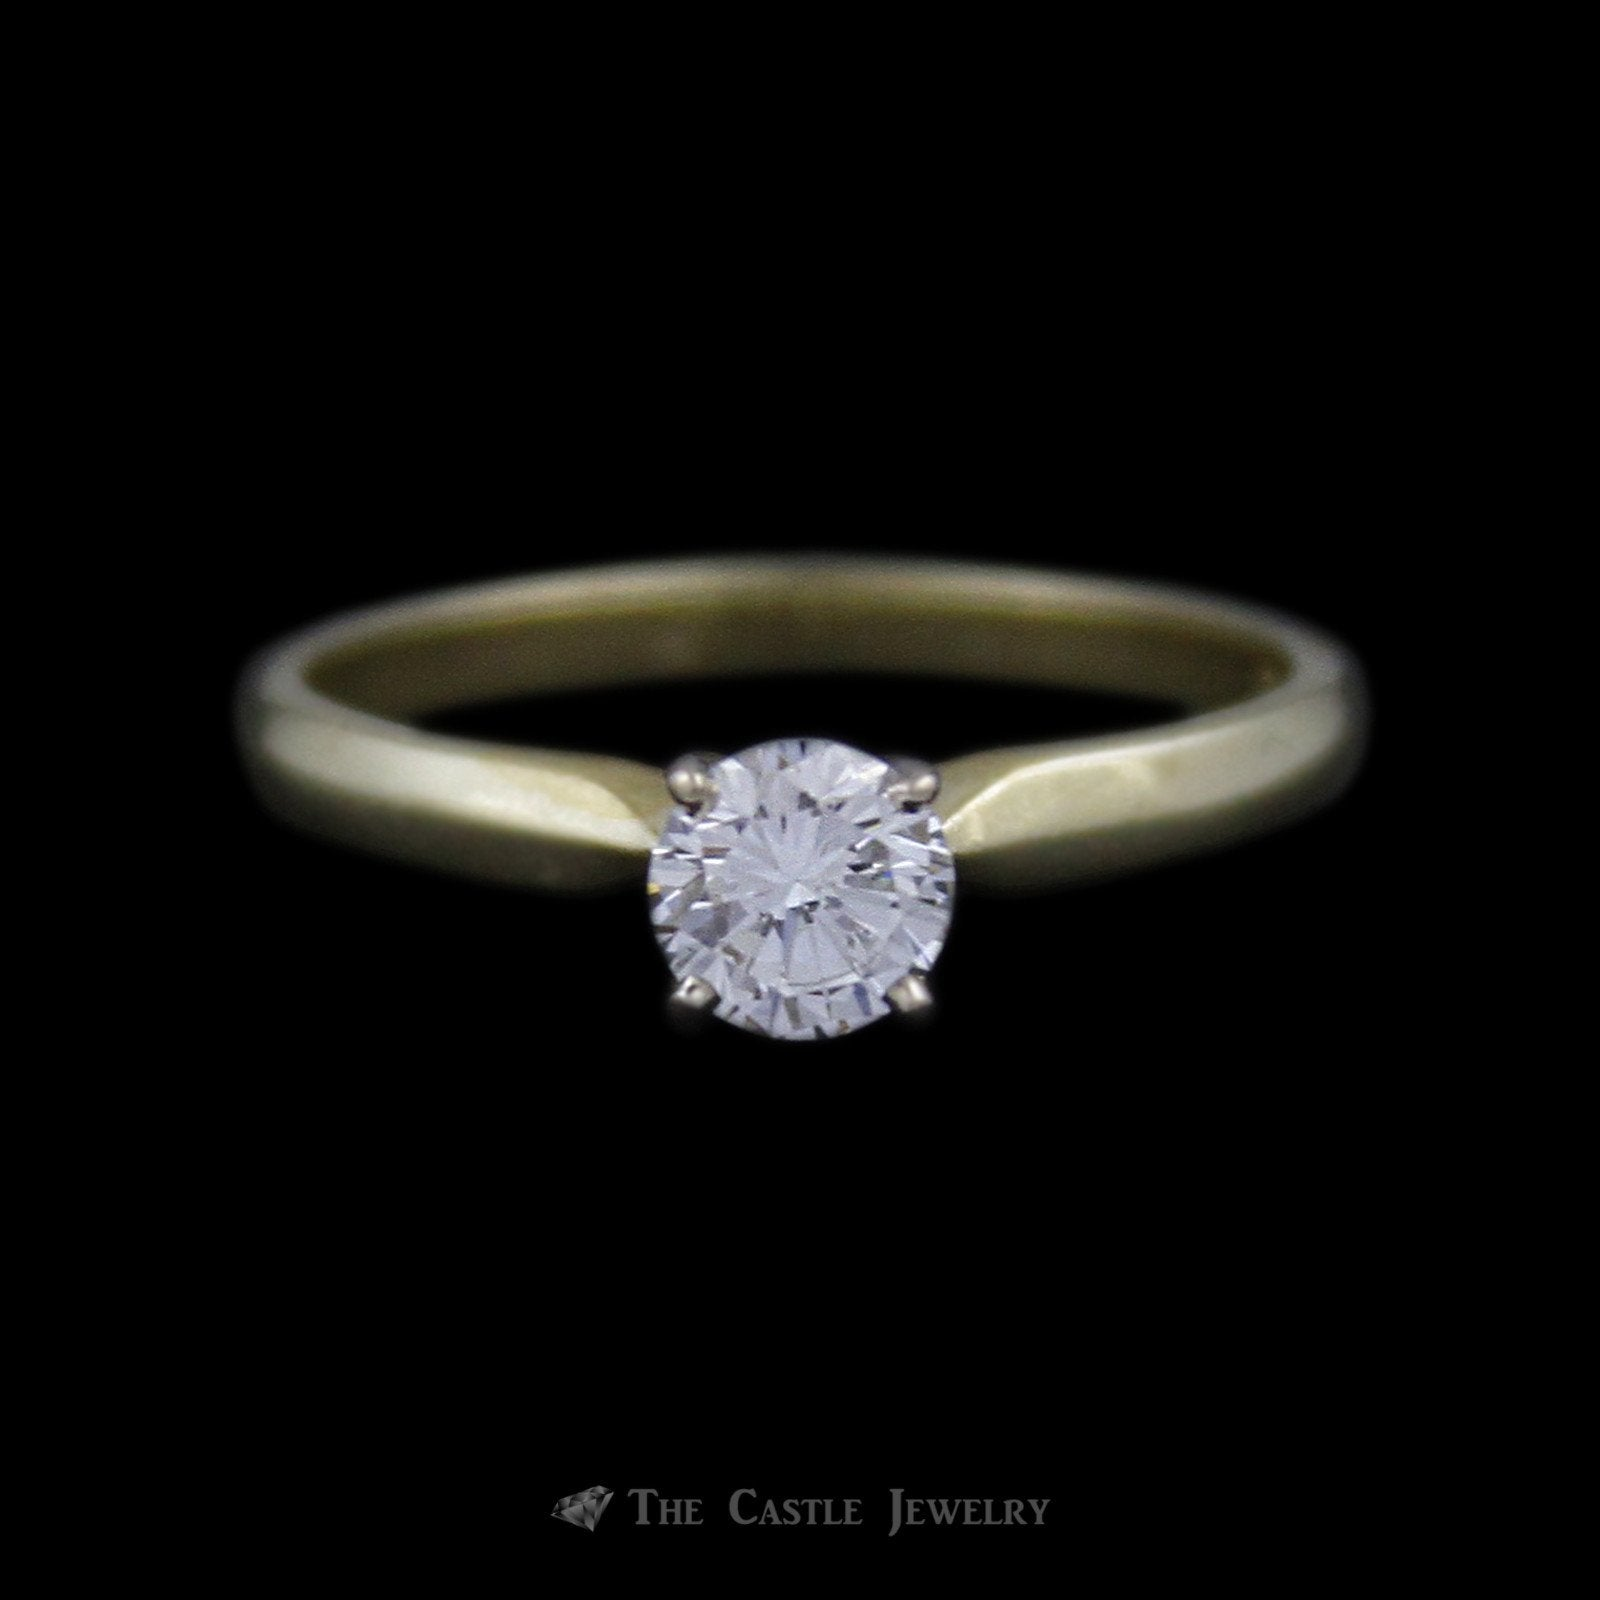 Round Brilliant Cut ½ Carat Diamond Engagement Ring SI1 G/H in 18K Yellow Gold